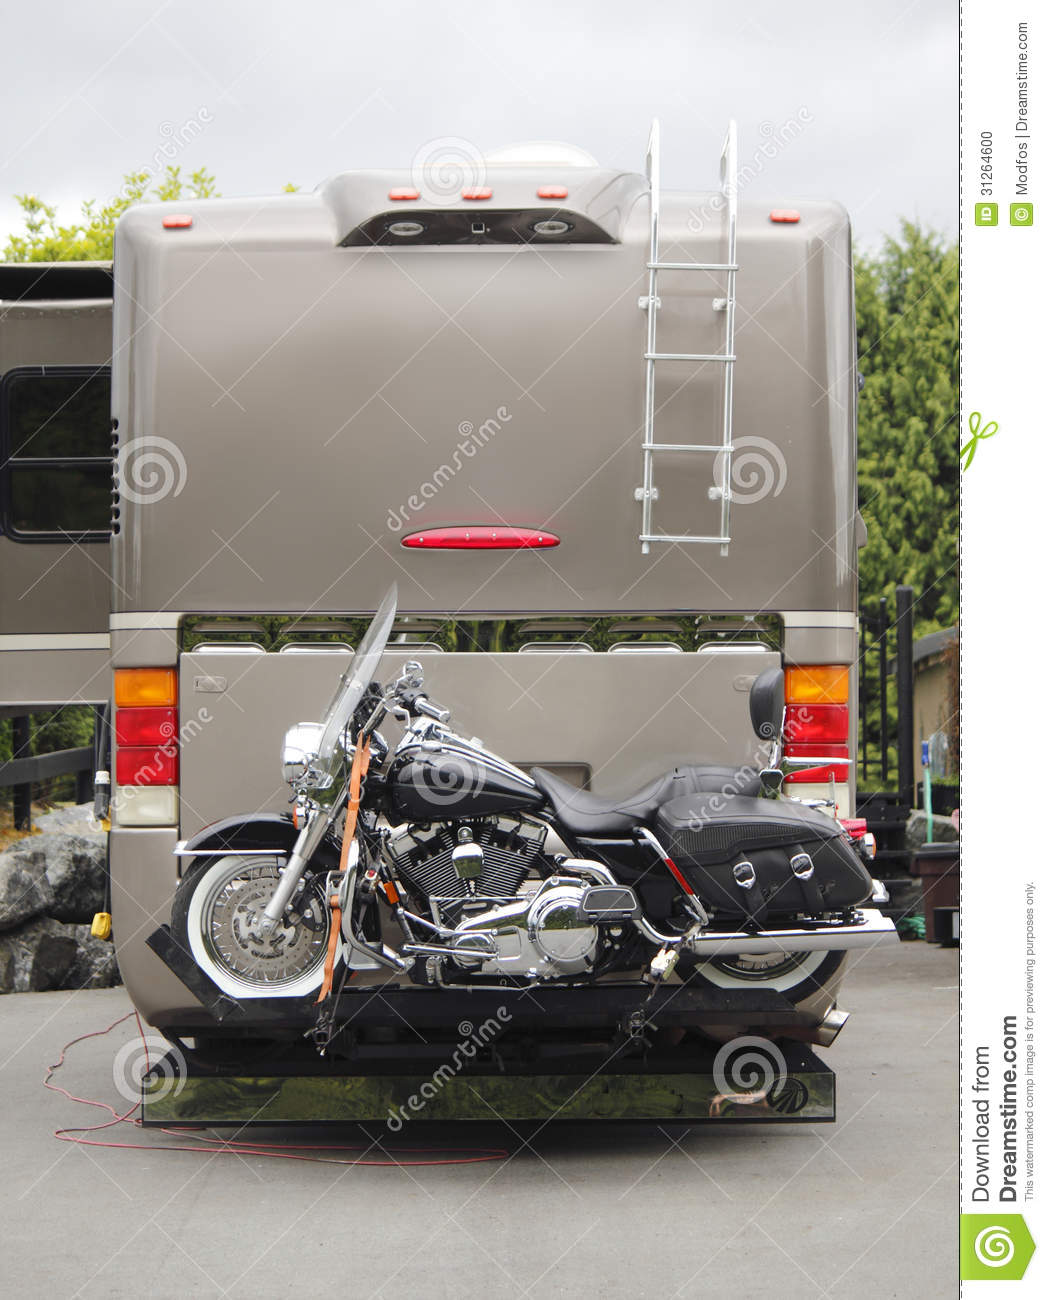 Recreational Vehicle: Motorcycle RV Hitch Stock Photo